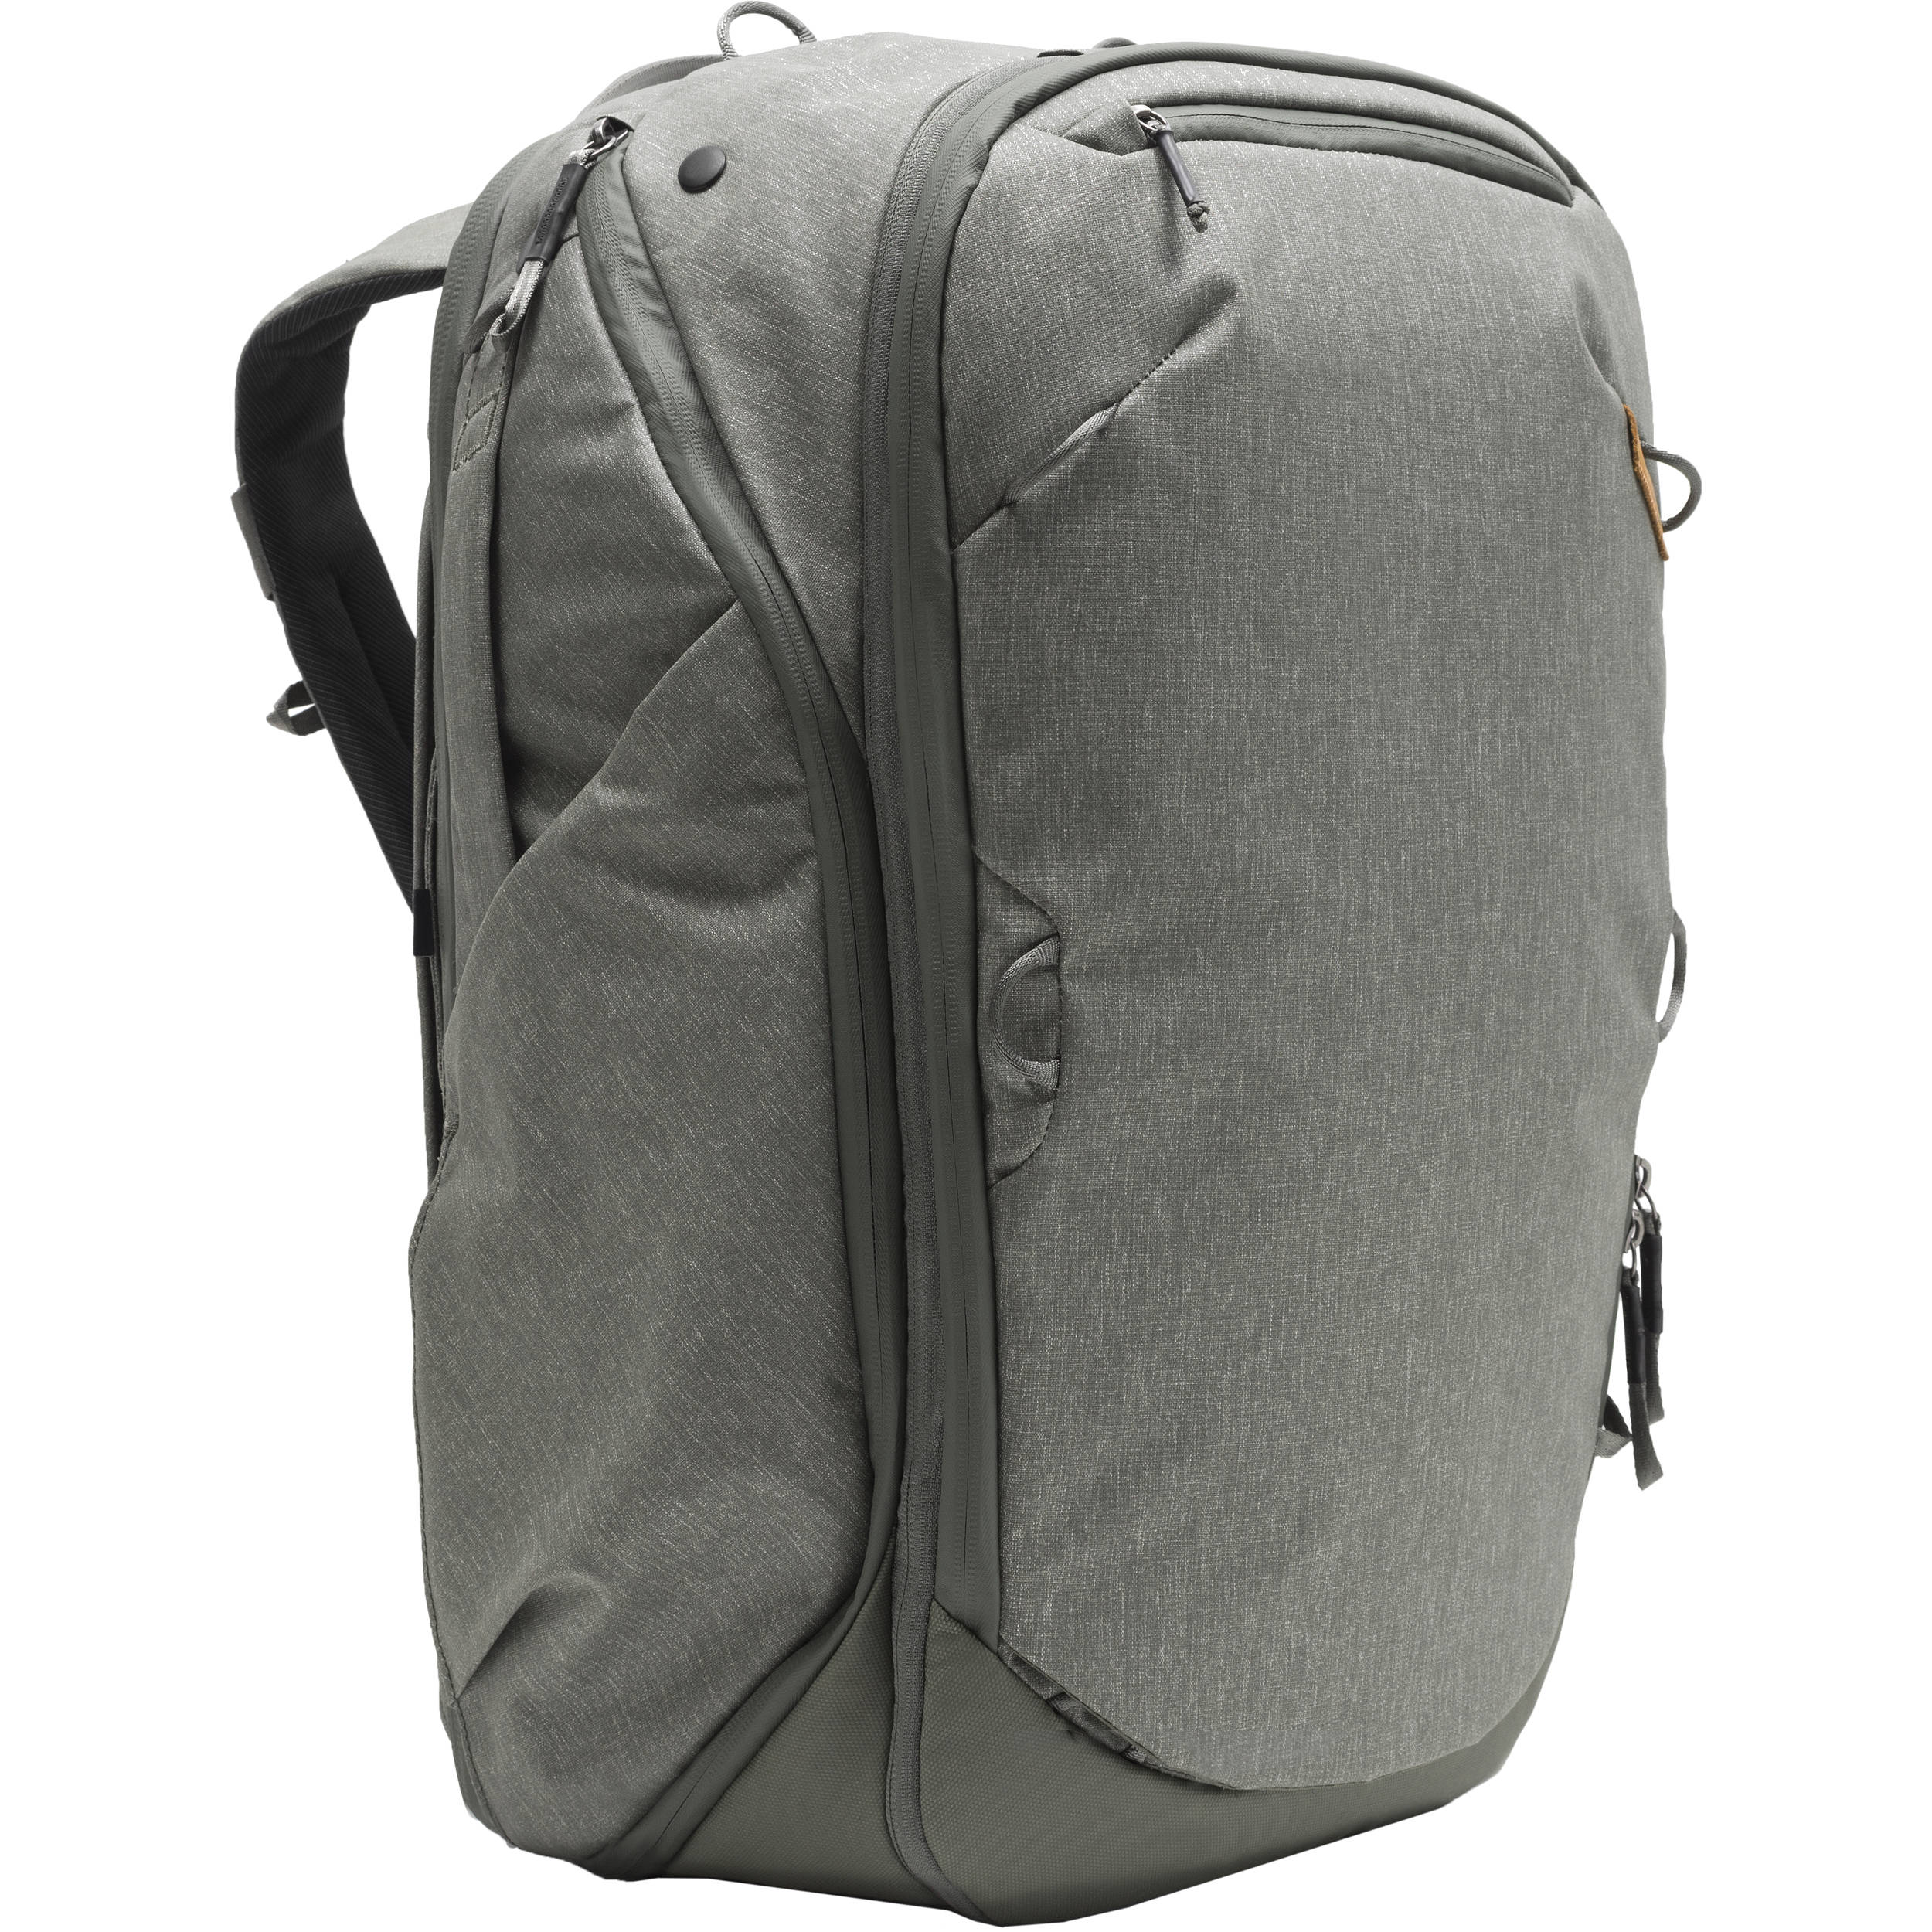 Peak Design Travel Backpack (Sage) BTR-45-SG-1 B H Photo Video 39645aca8f